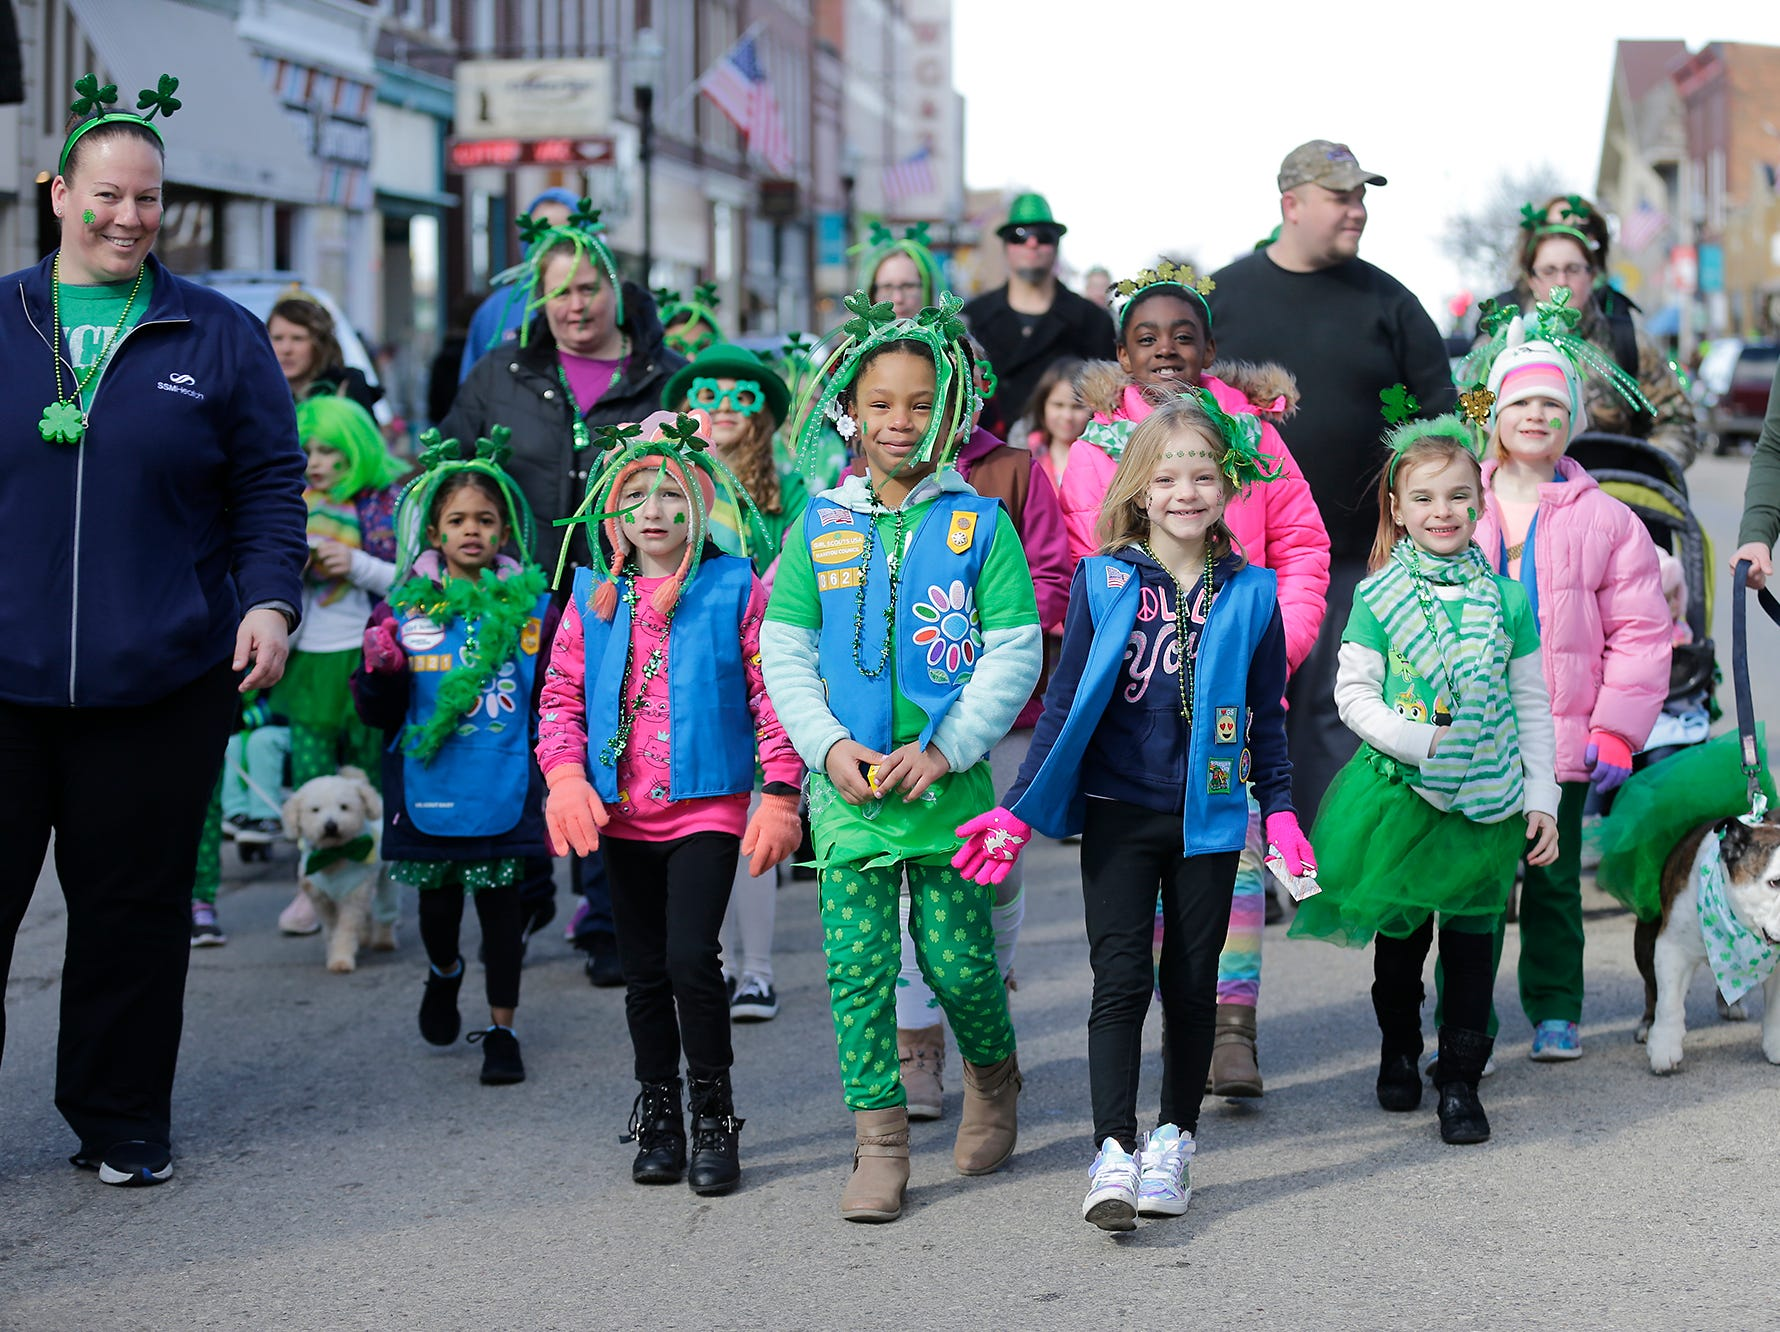 Rosenow Elementary School Girl Scouts participated in the City of Fond du Lac St. Patrick's Day Parade Saturday, March 16, 2019 on Main Street in downtown Fond du Lac. Hundreds of people lined the street to watch over 50 parade participants. Doug Raflik/USA TODAY NETWORK-Wisconsin